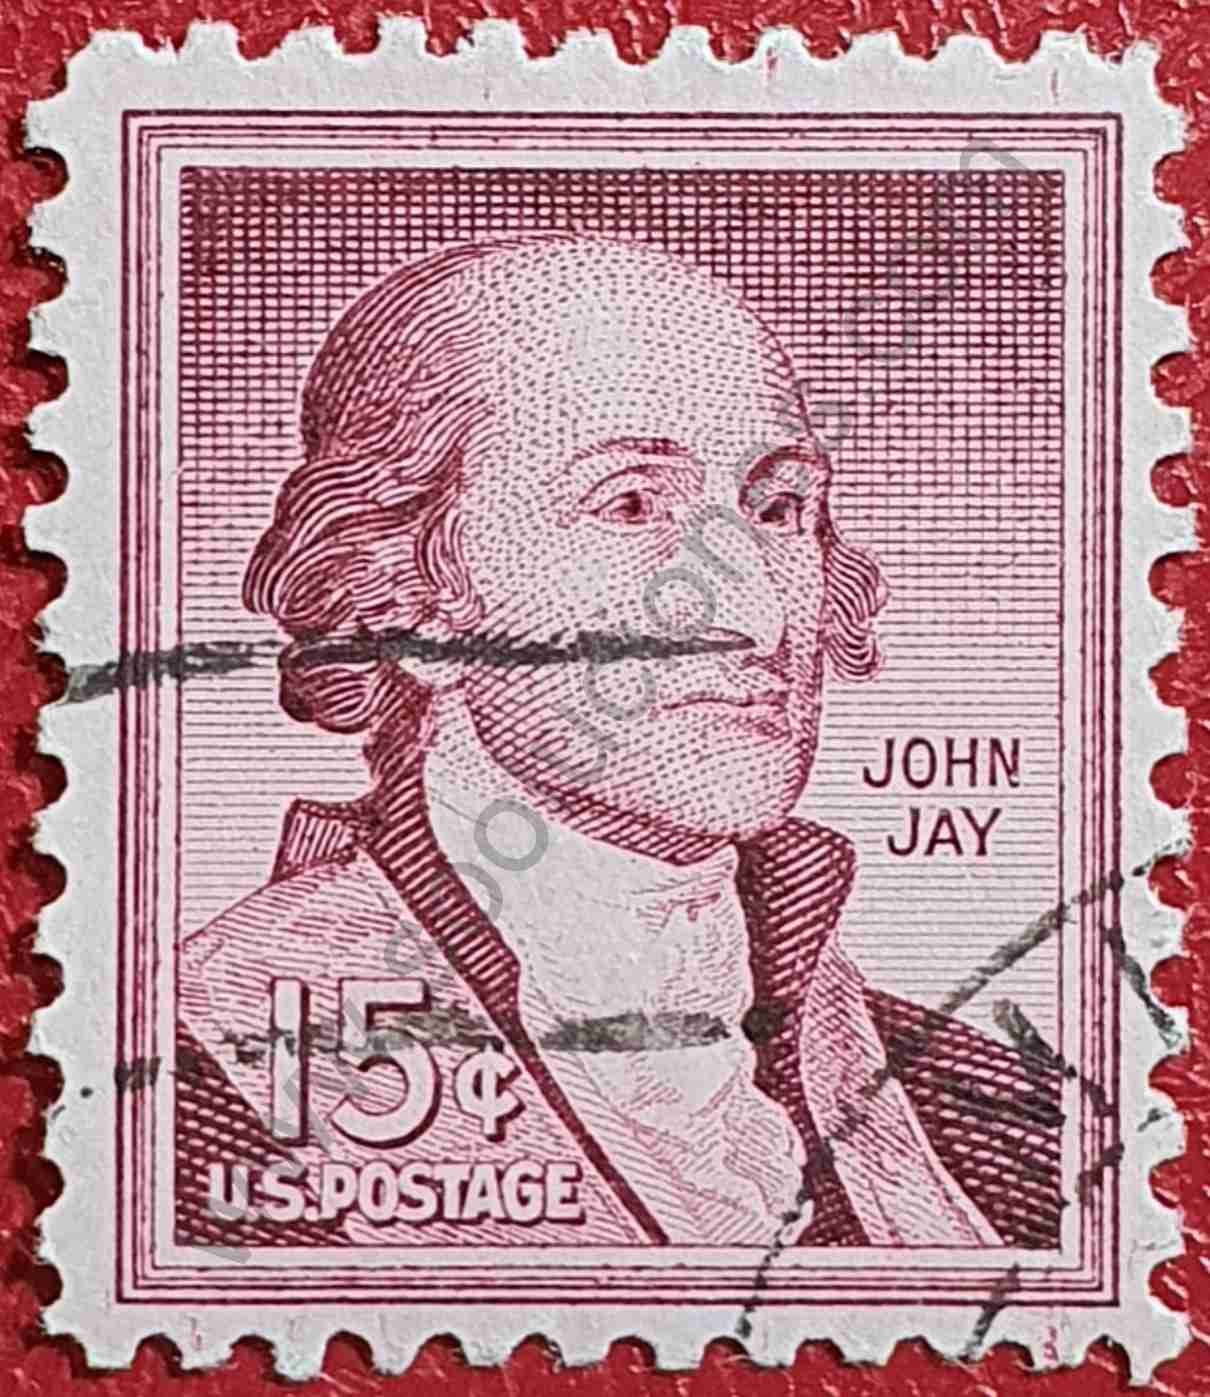 John Jay - Sello Estados Unidos 1958